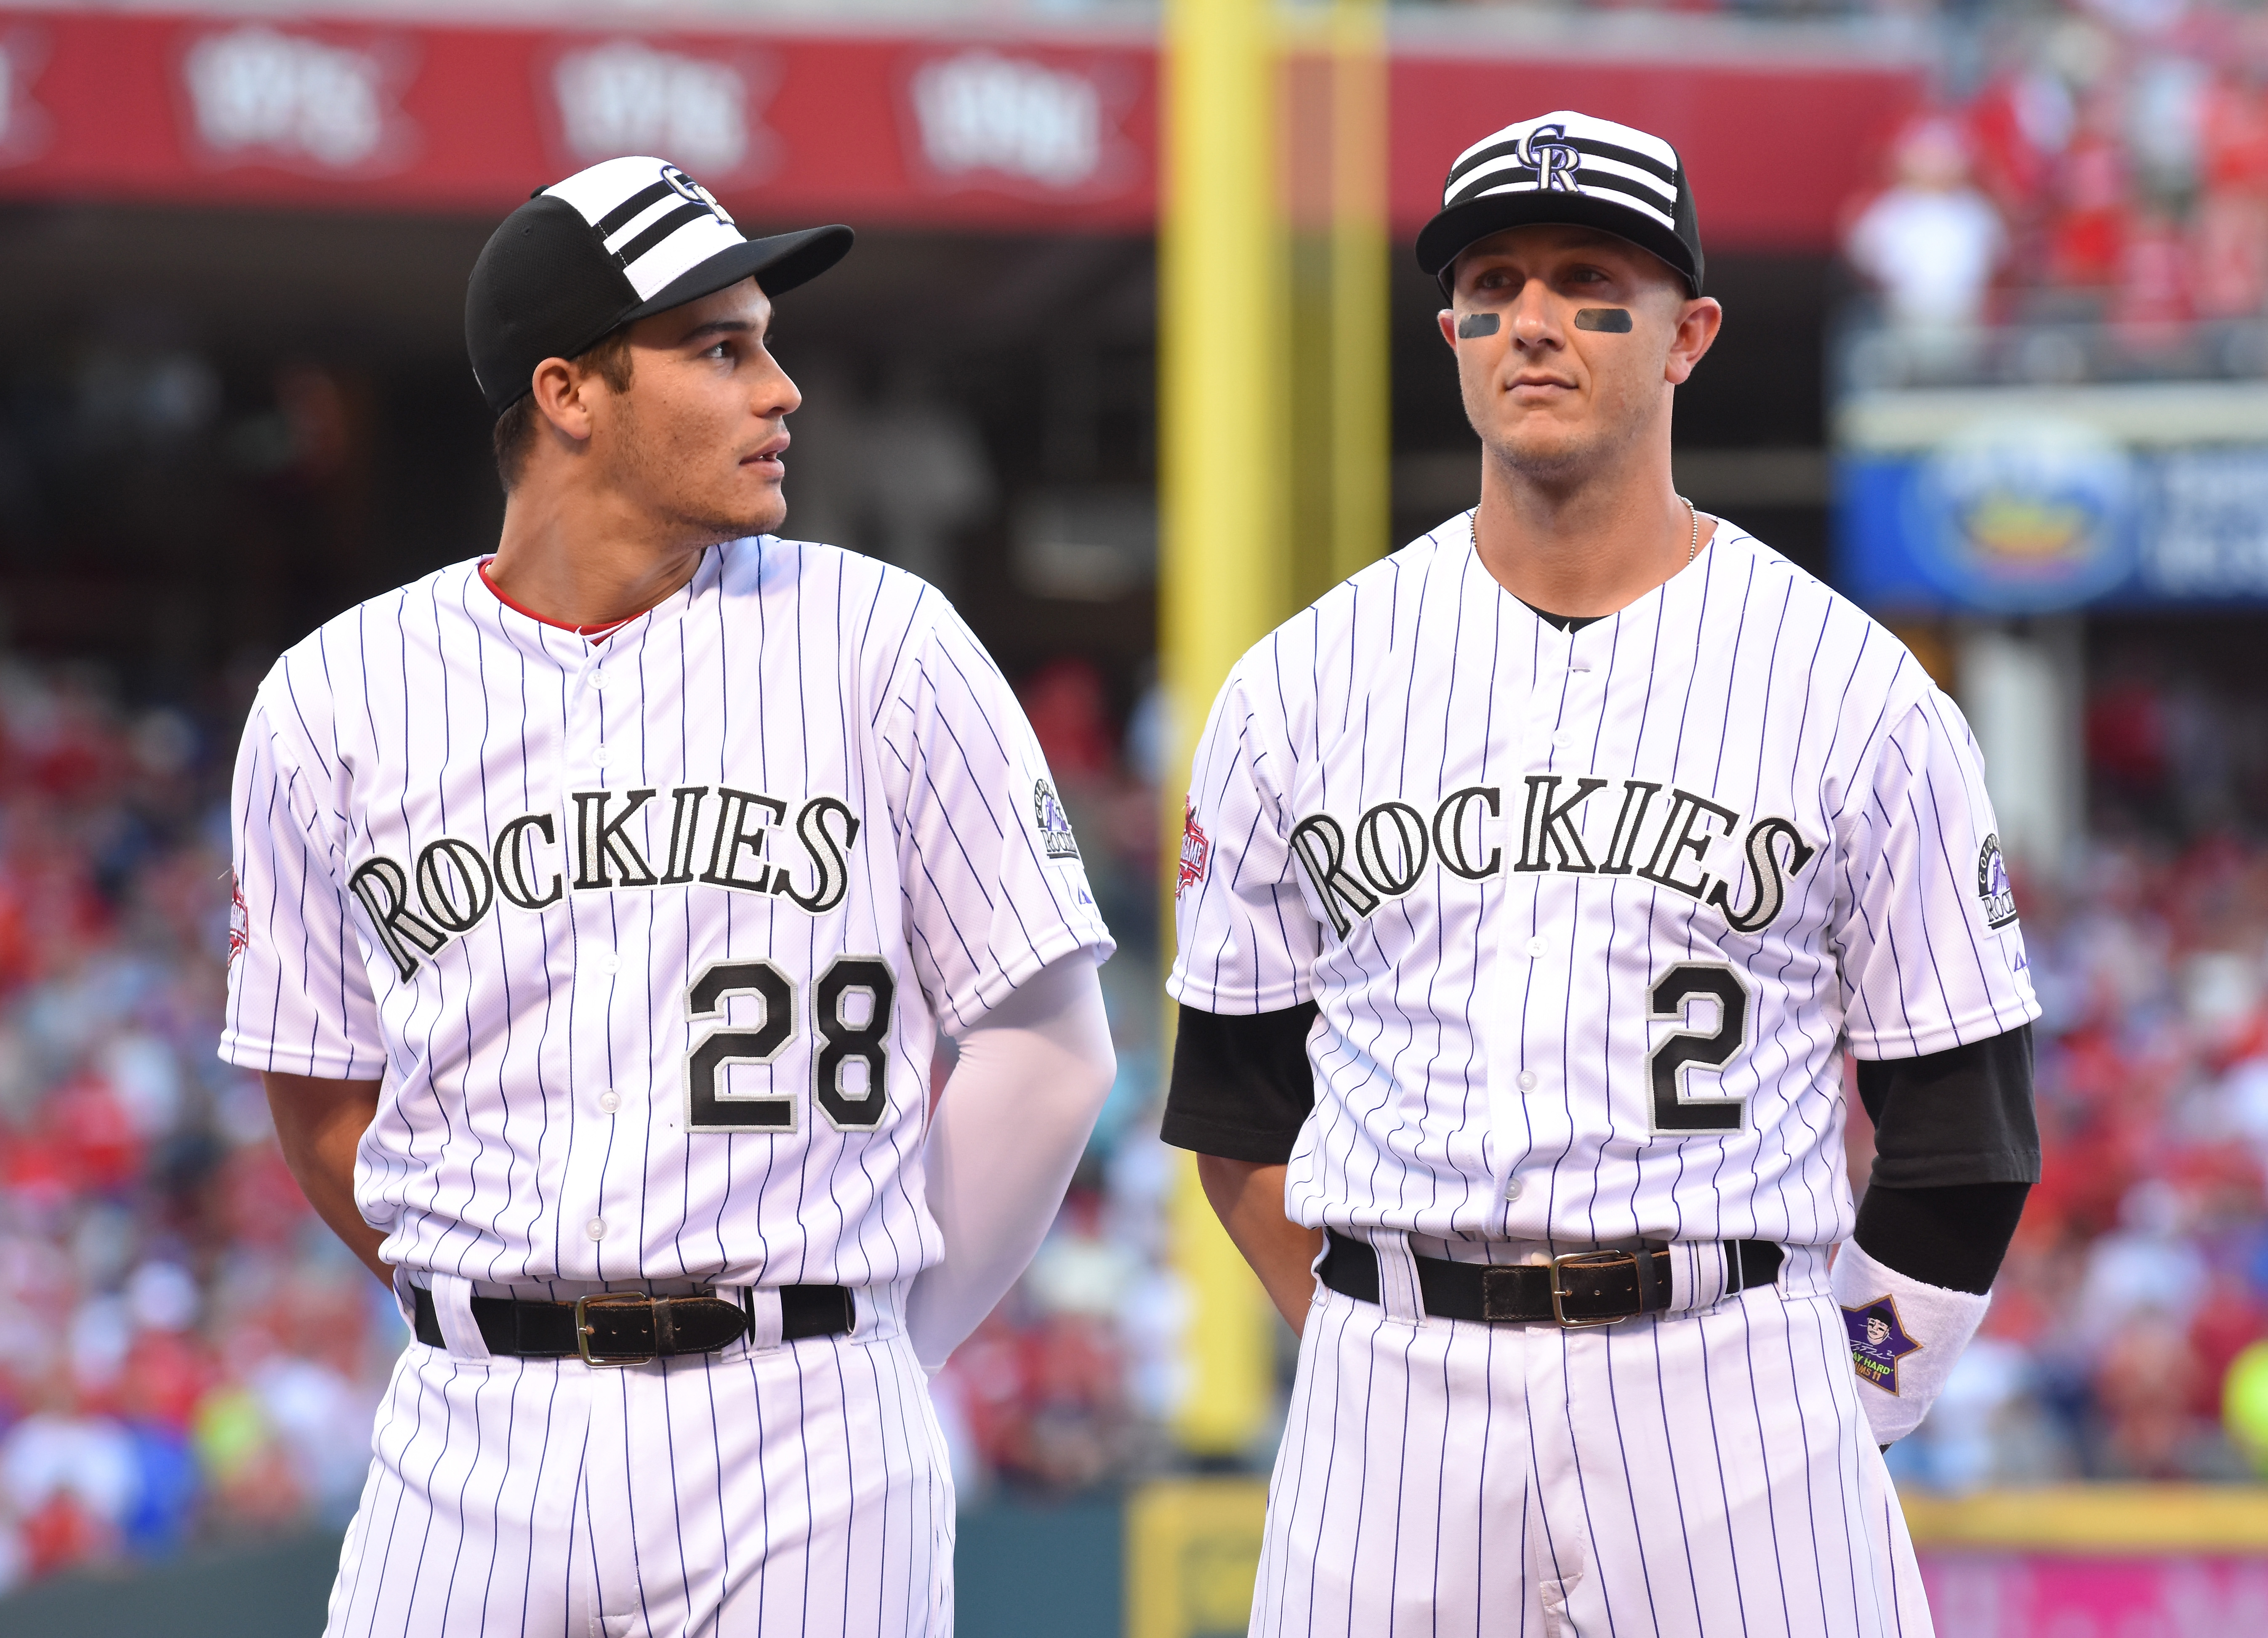 Troy Tulowitzkis Legacy Will Hold A Special Place In Rockies